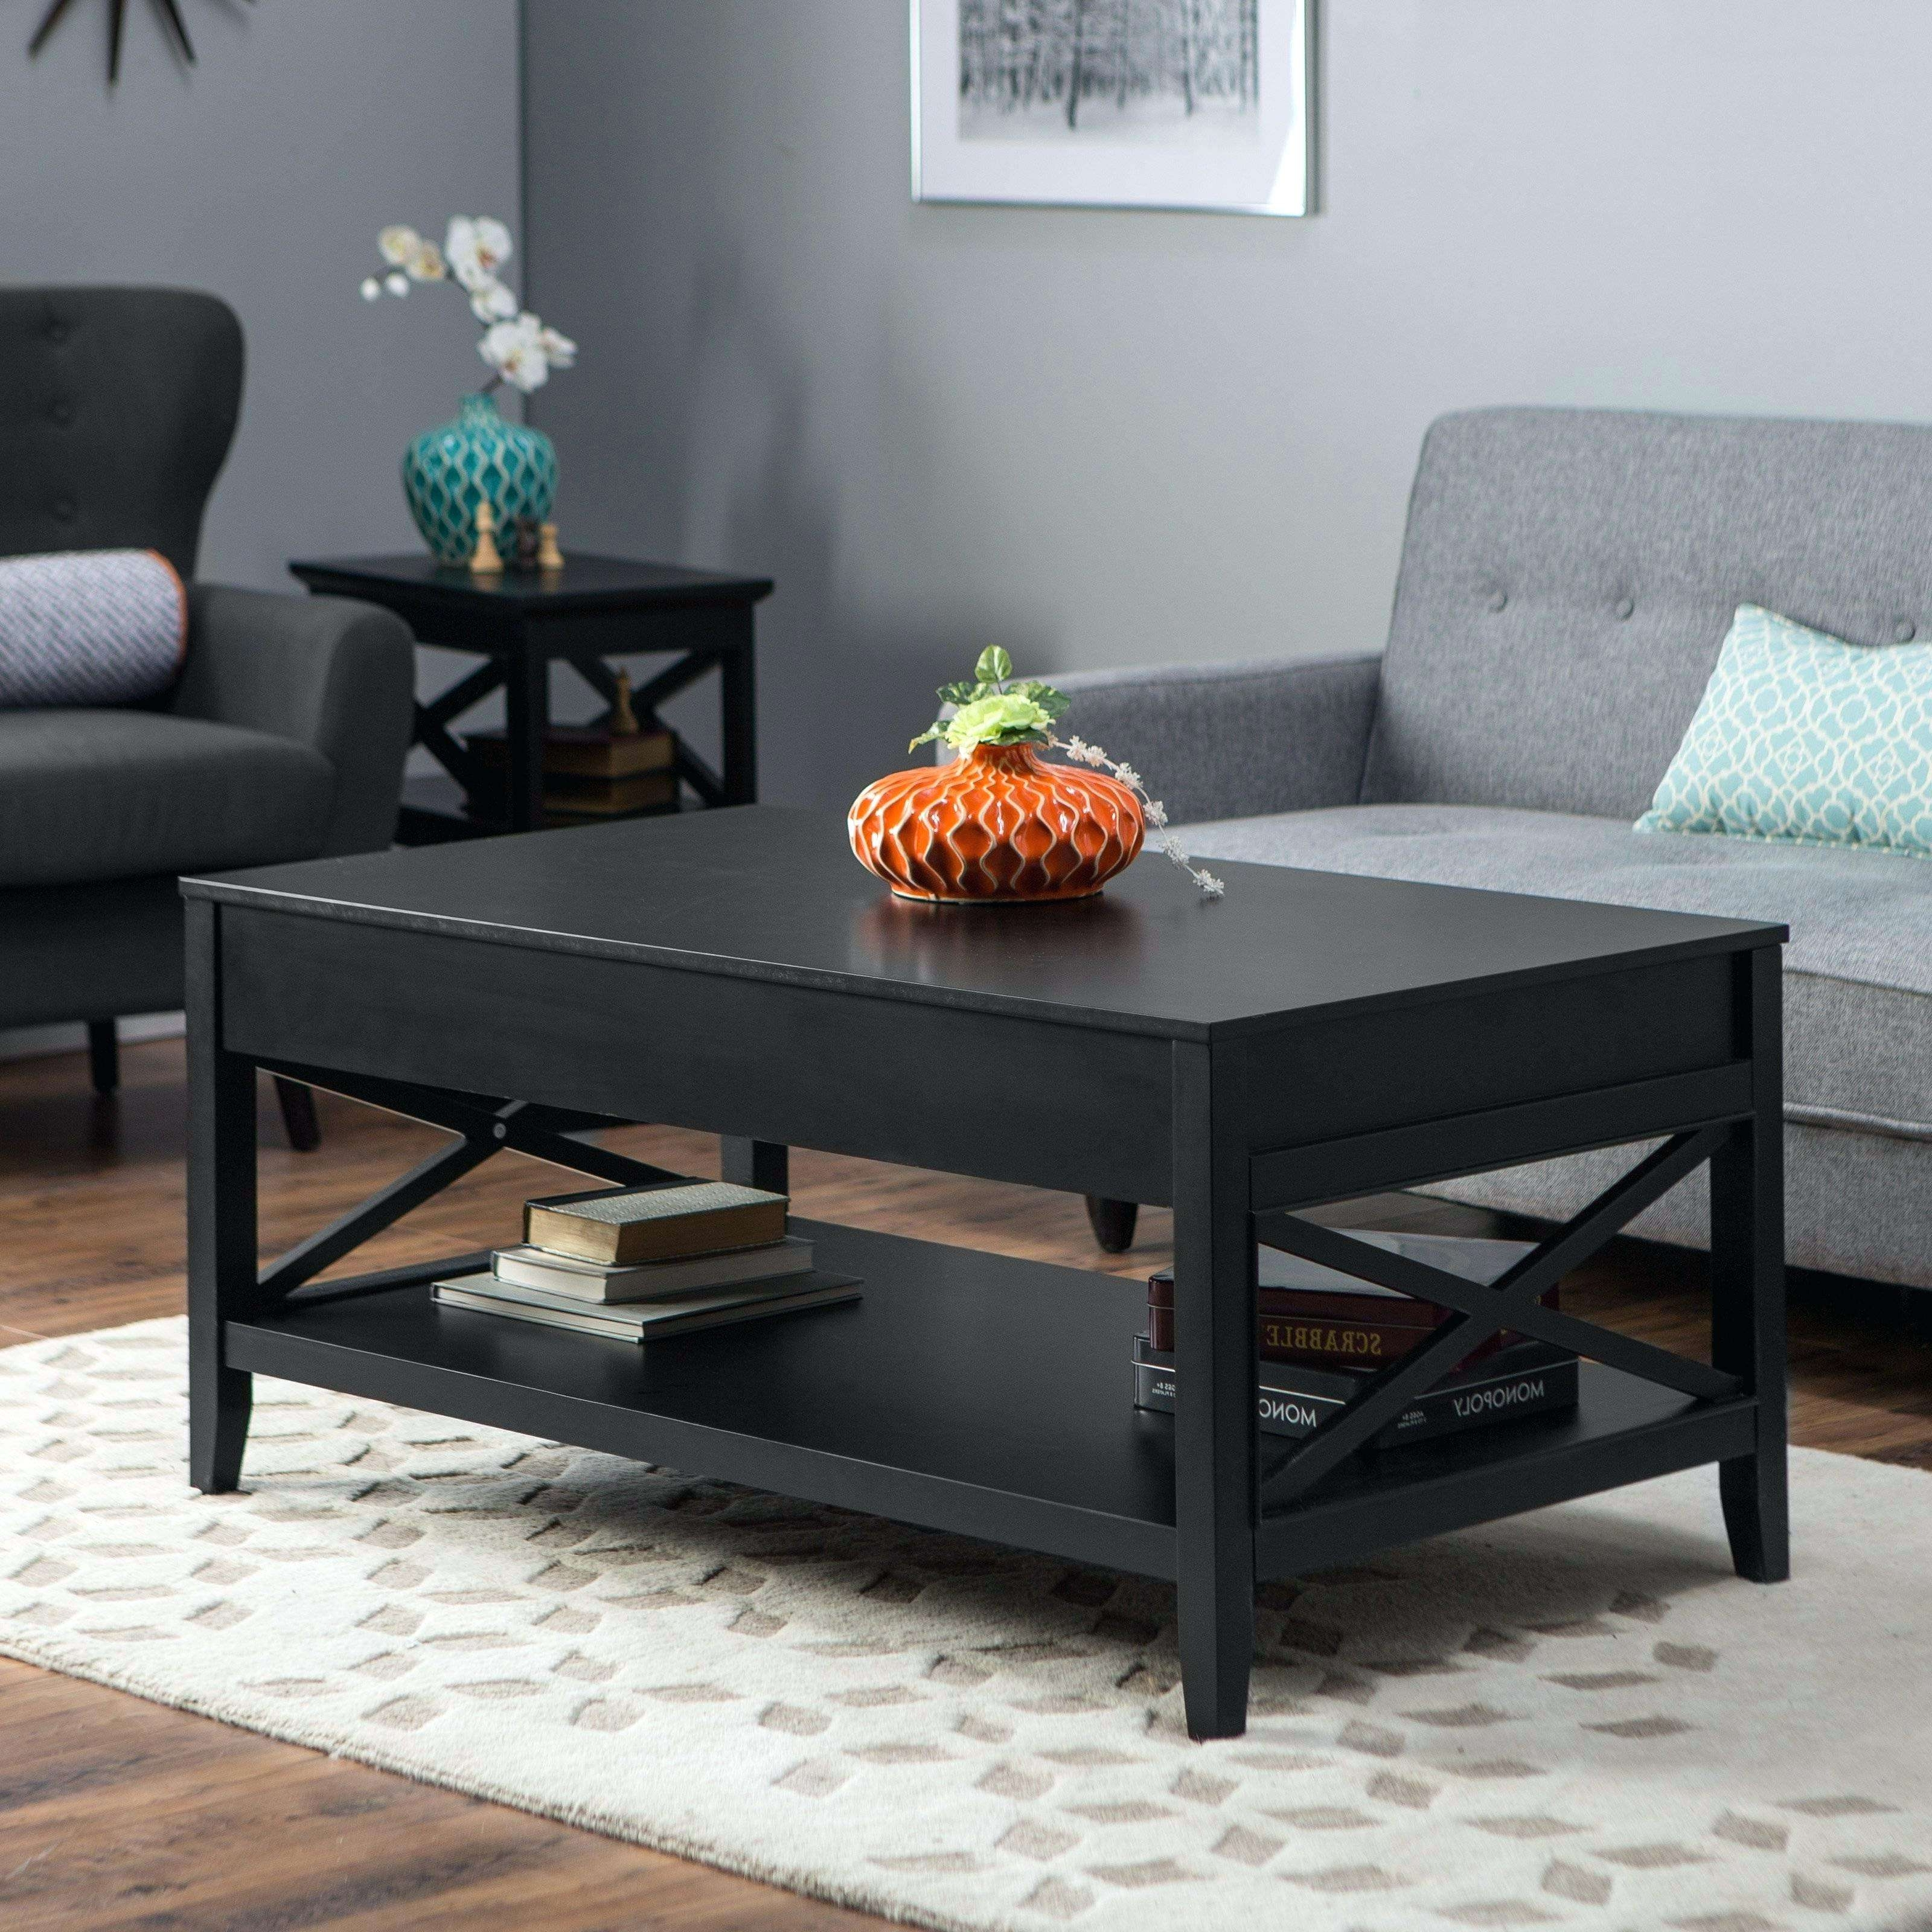 Favorite Lift Up Top Coffee Tables Intended For Pull Up Coffee Table Fit For Living Room Small Coffee Tables That (View 18 of 20)